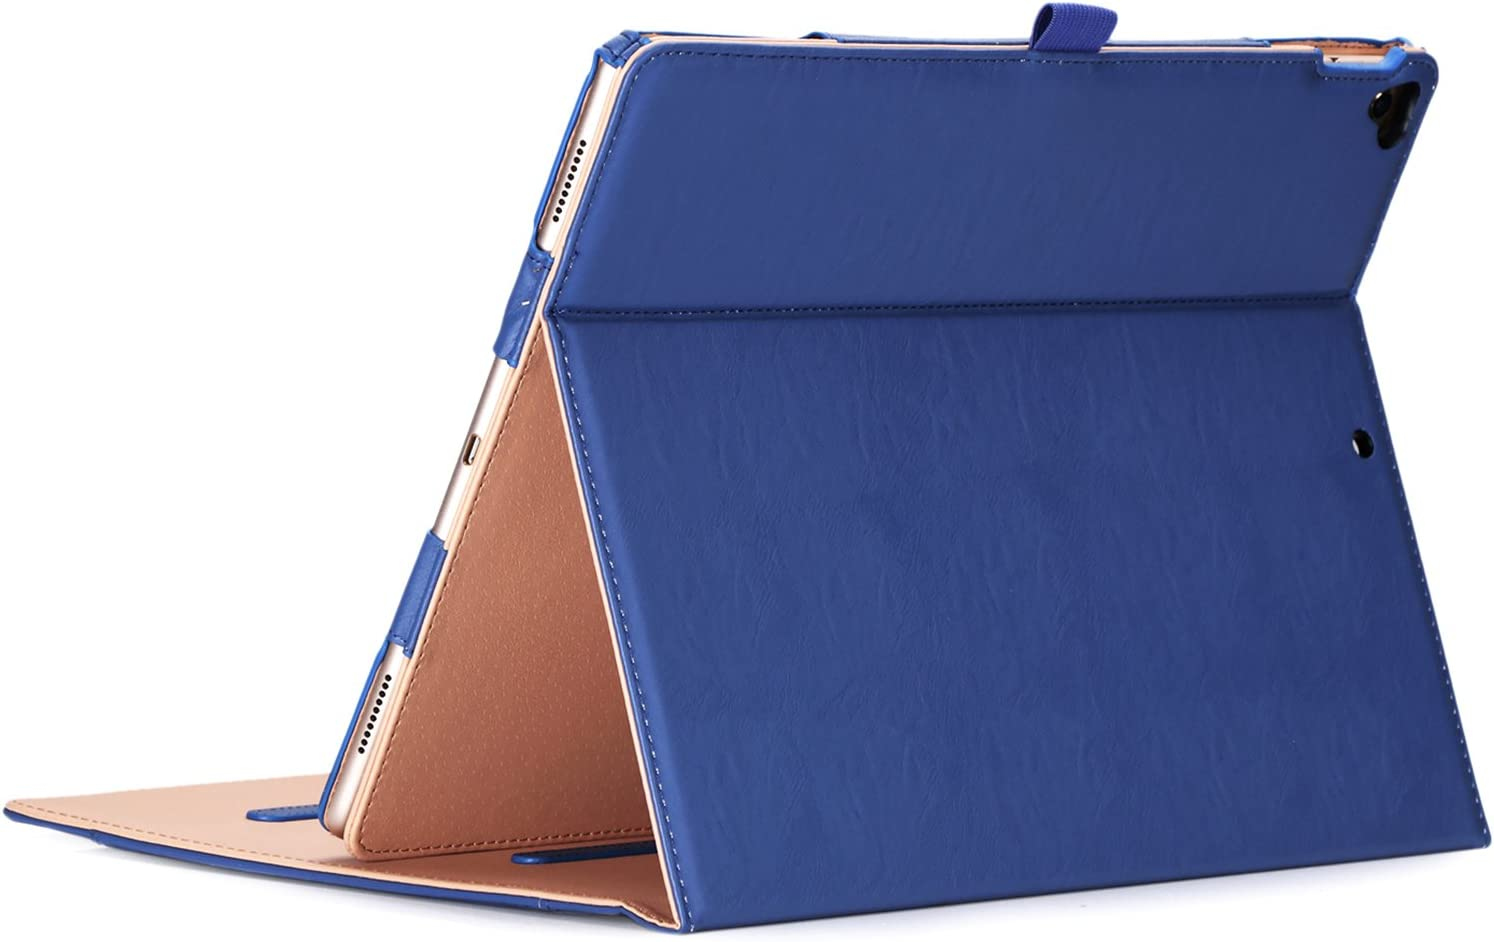 ProCase iPad Pro 12.9 2017/2015 Case (Old Model) - Stand Folio Case Cover for Apple iPad Pro 12.9 Inch (Both 2017 and 2015 Models), with Multiple Viewing Angles, Apple Pencil Holder -Navy Blue